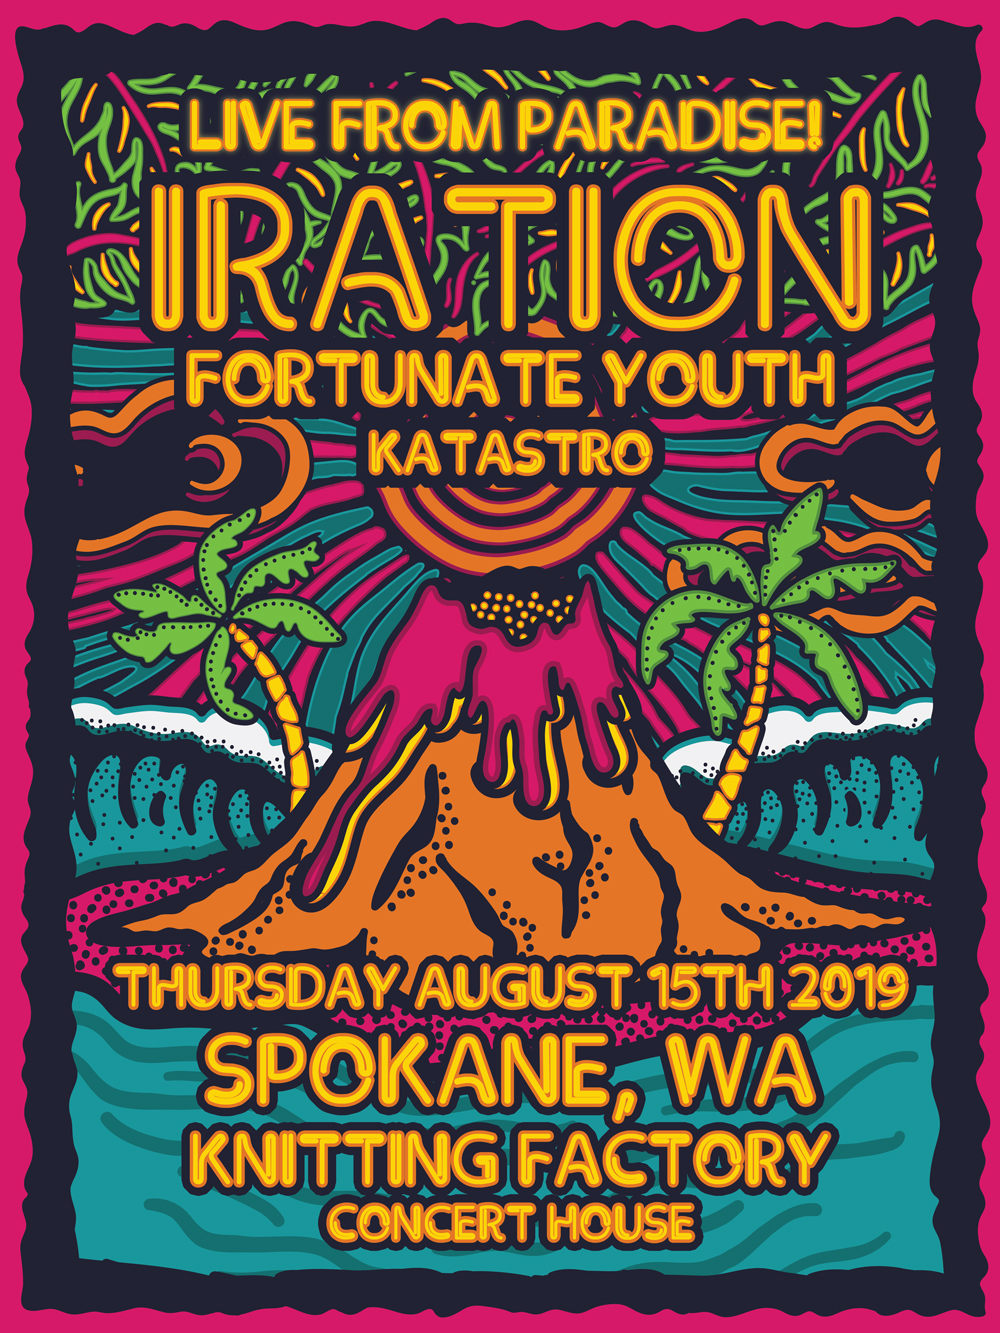 IRATION_LIVE-FROM-PARADISE_POSTER_20190815_SPOKANE.jpg